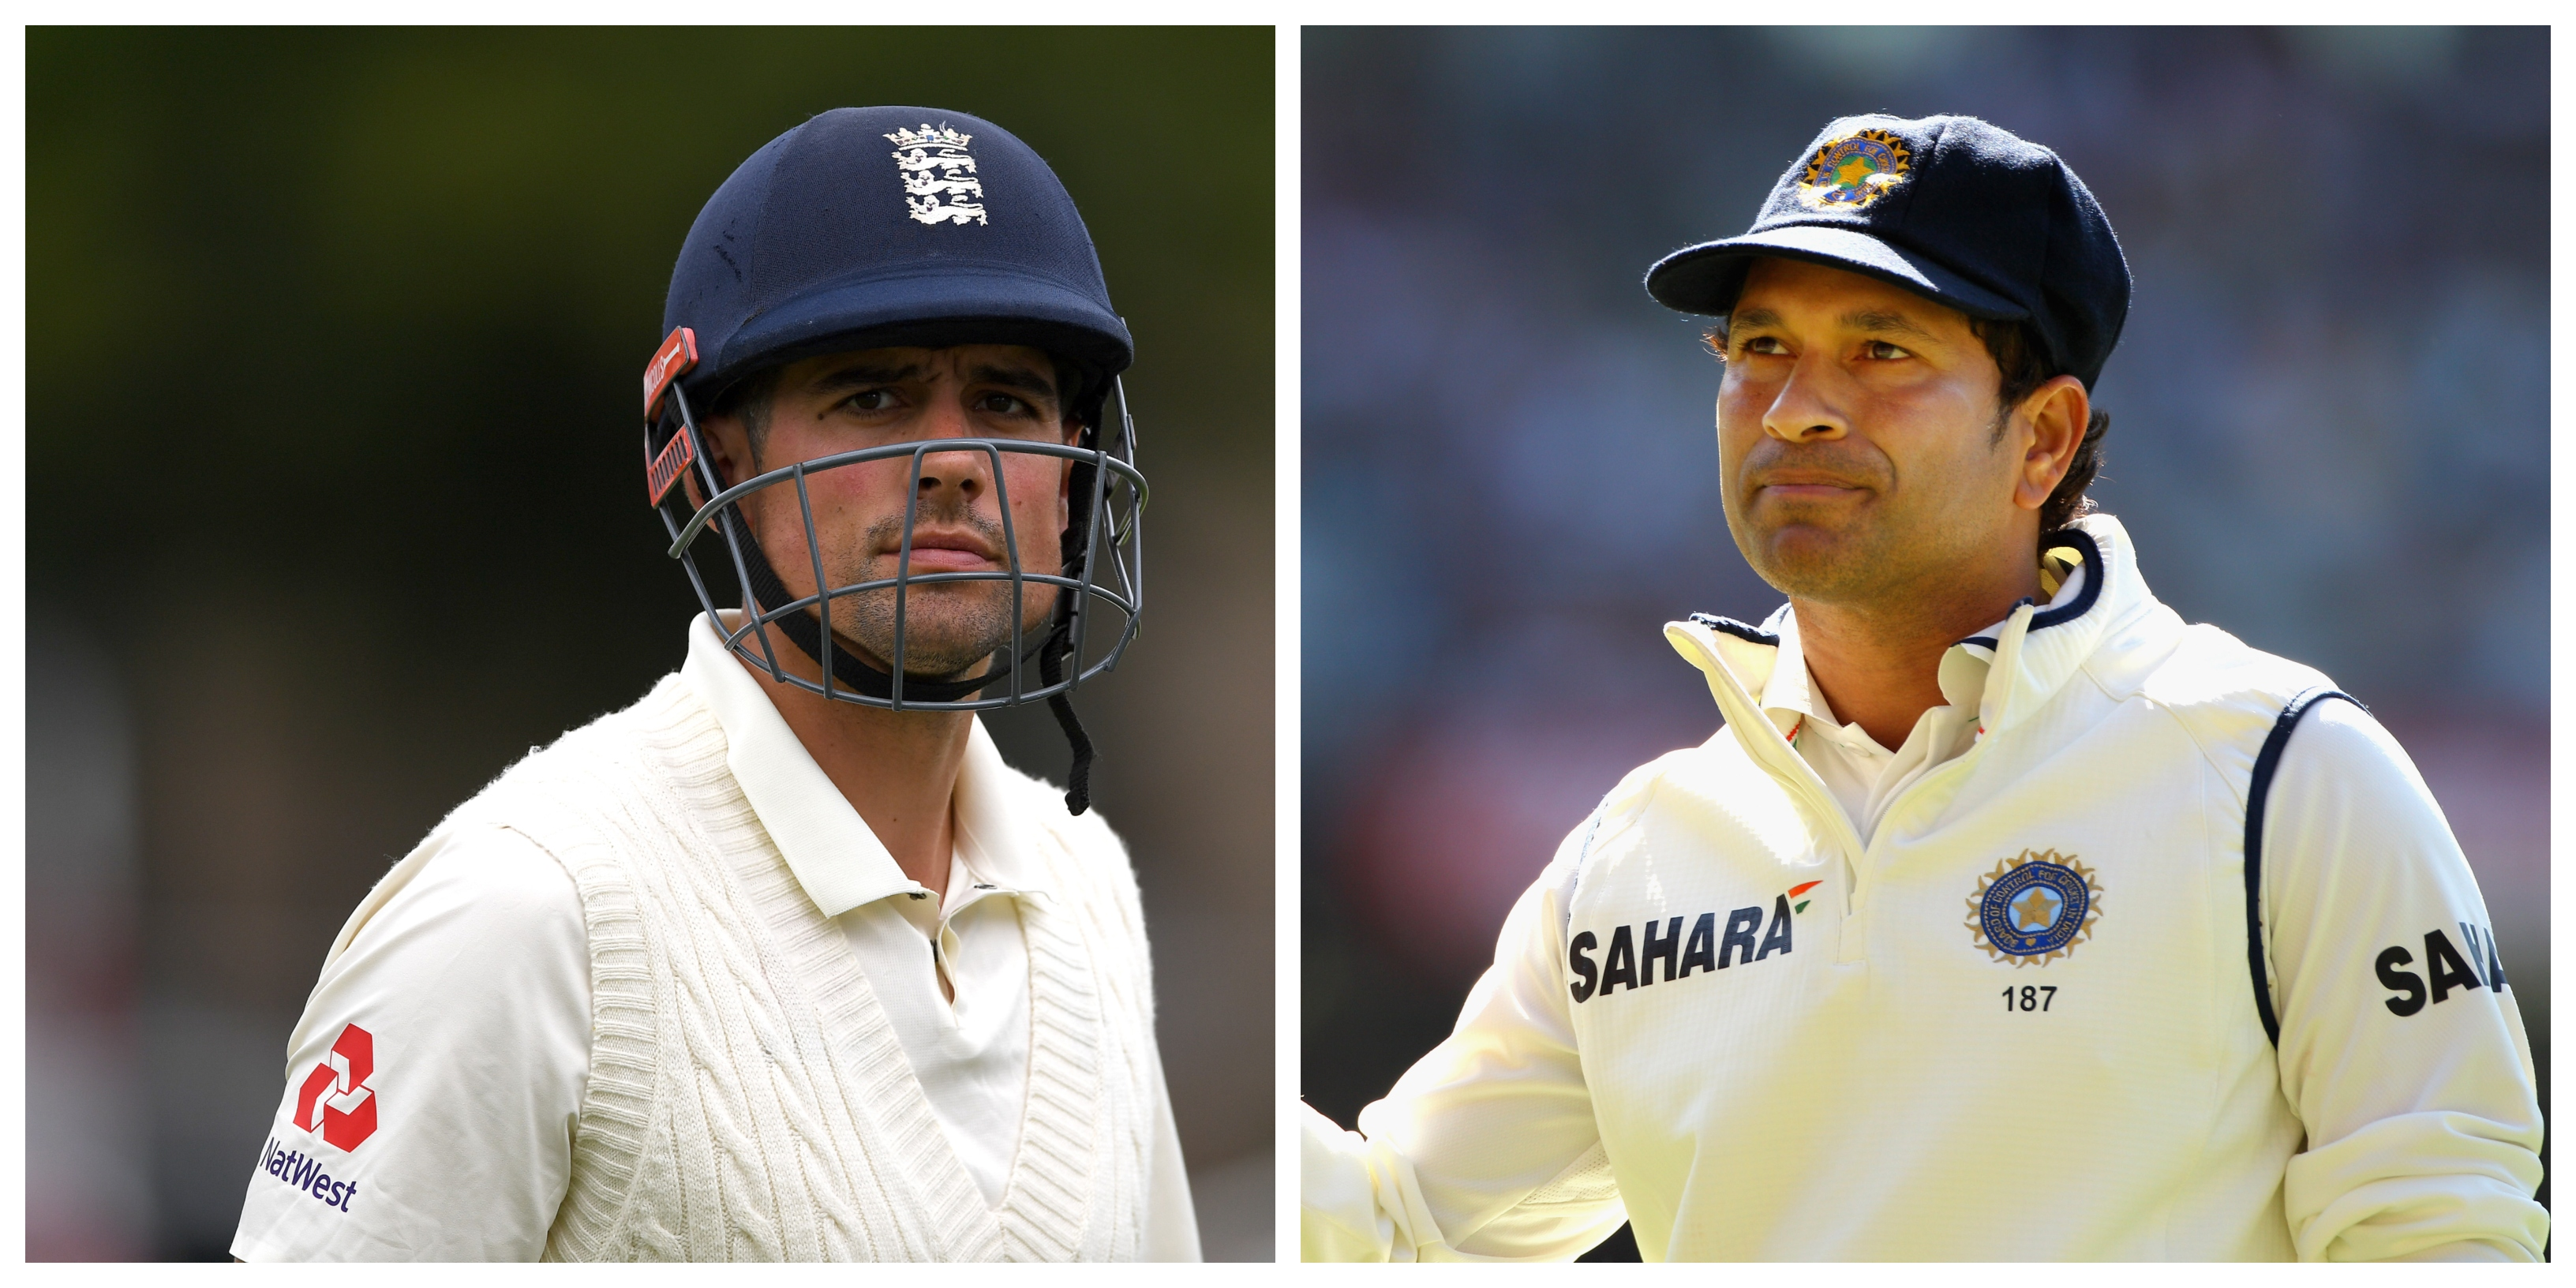 Cook and Tendulkar played Test Cricket against each other  | Getty